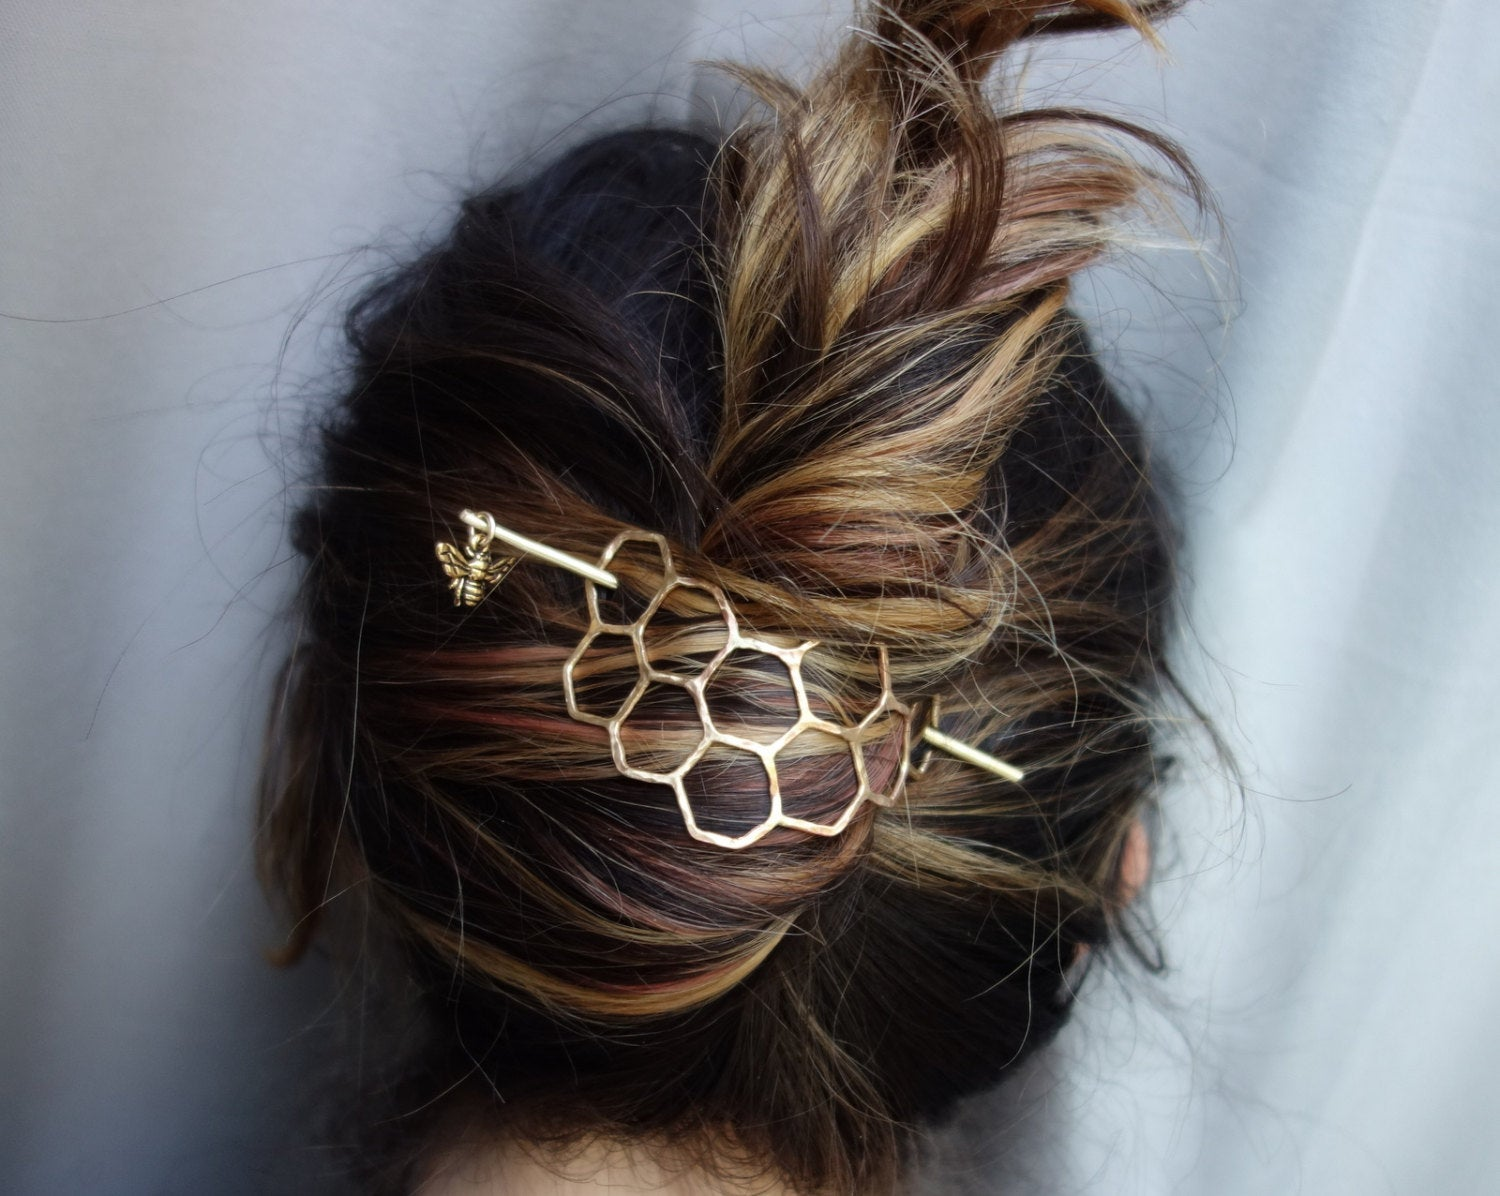 Large Brass Honeycomb Handmade Hair Bun Slide Pin with Dangling Bee Hair Twist Bun Pin